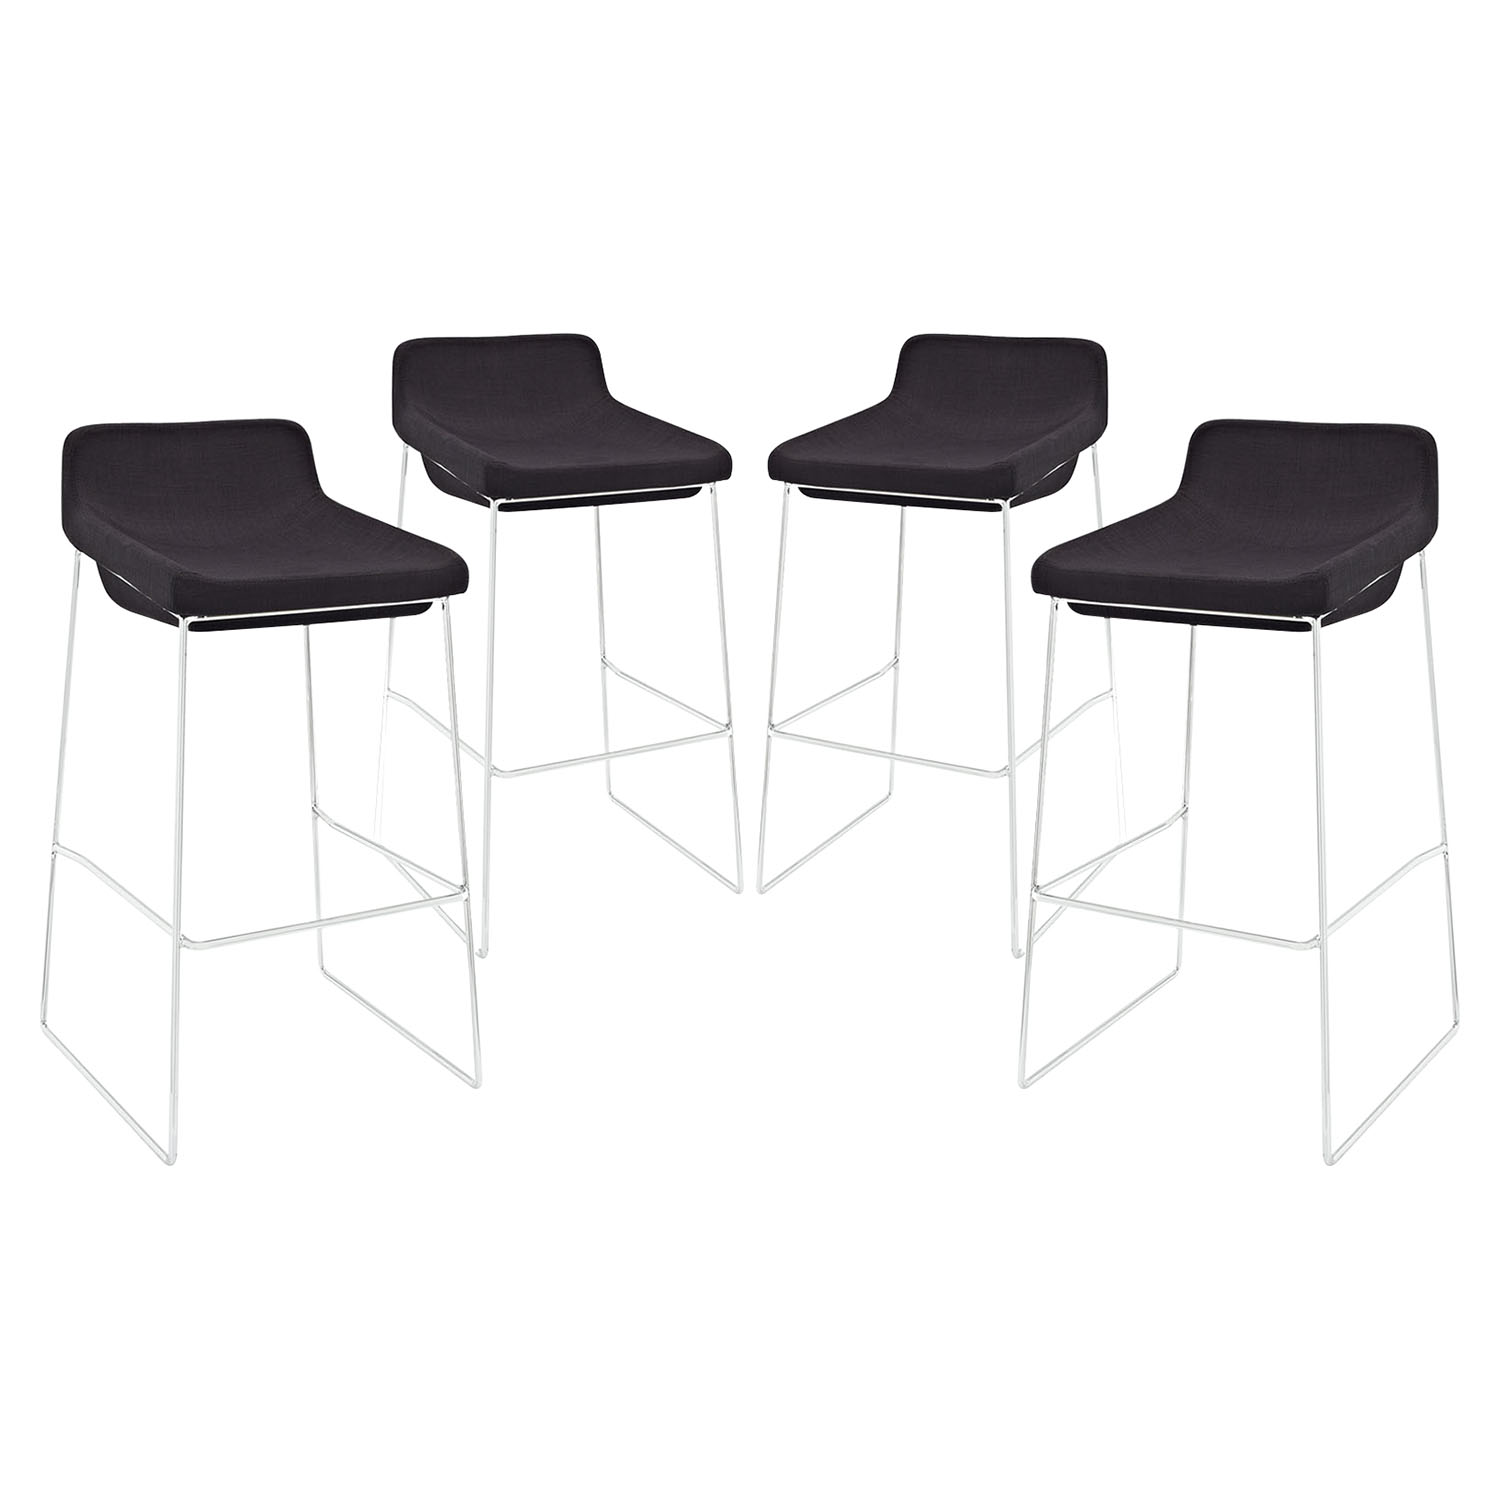 Garner Bar Stool - Metal Legs, Black (Set of 4)